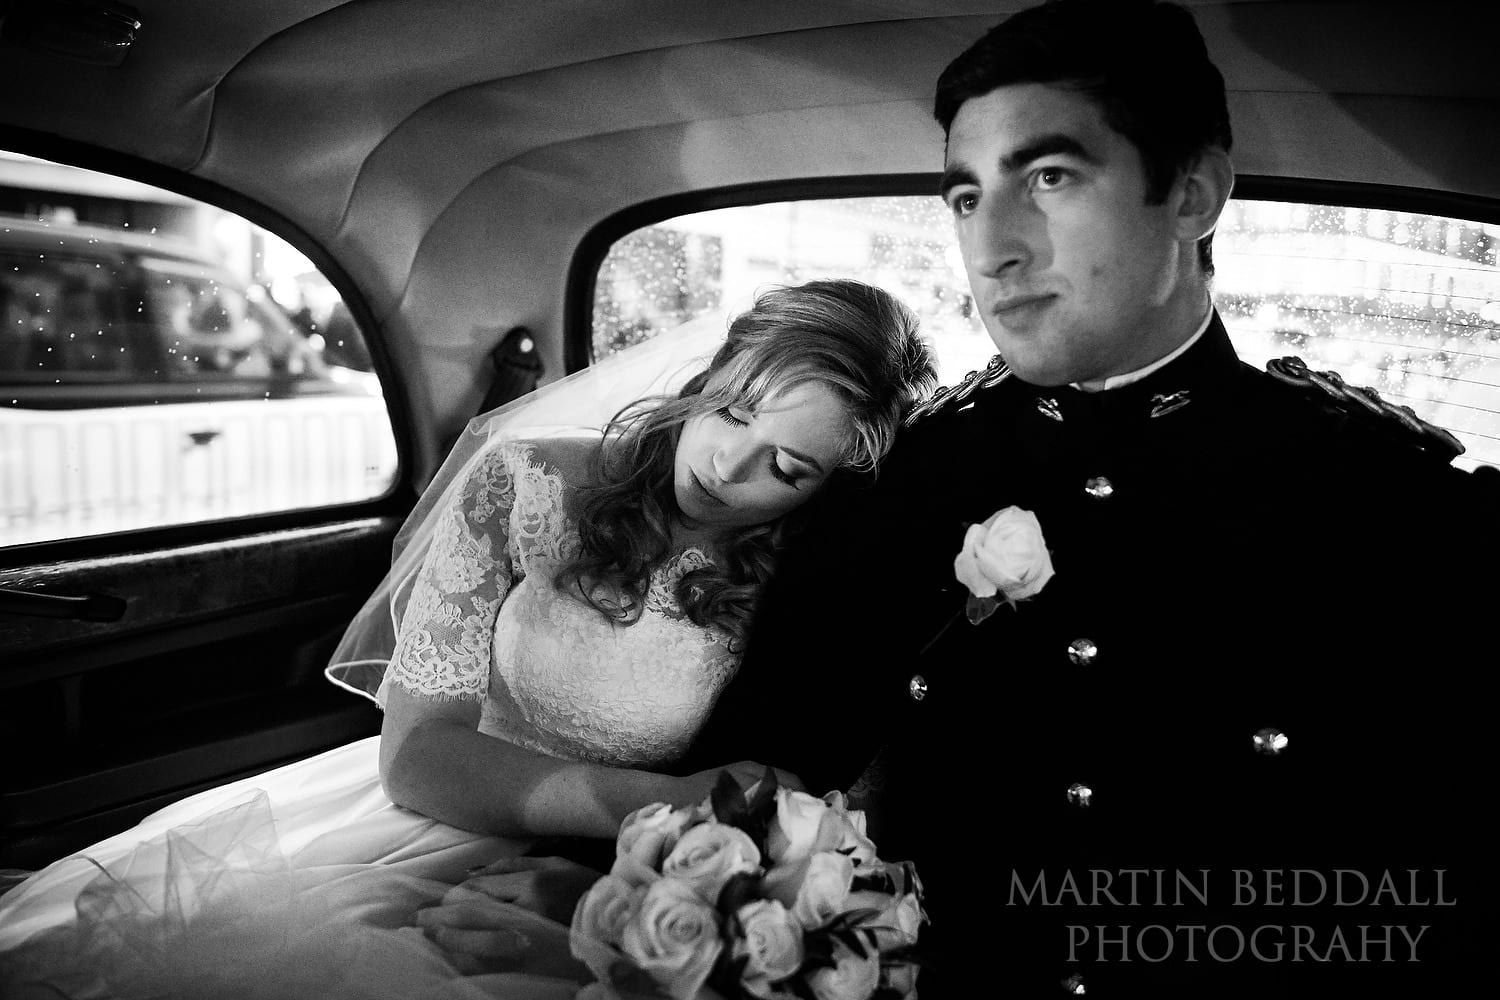 Heading to the wedding reception in the London cab